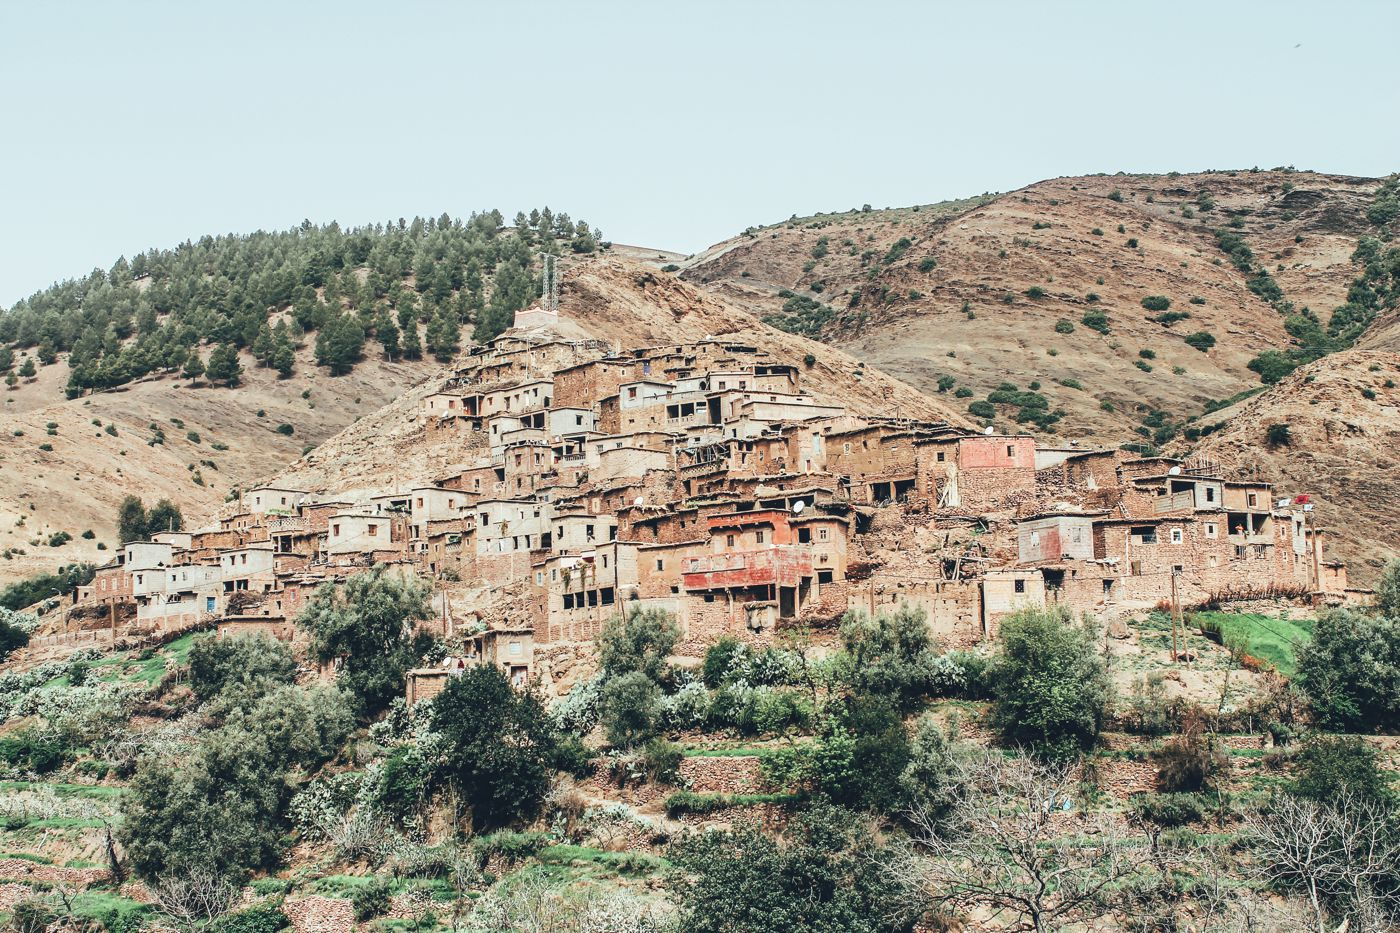 An Afternoon In A Berber Village in Morocco (2)